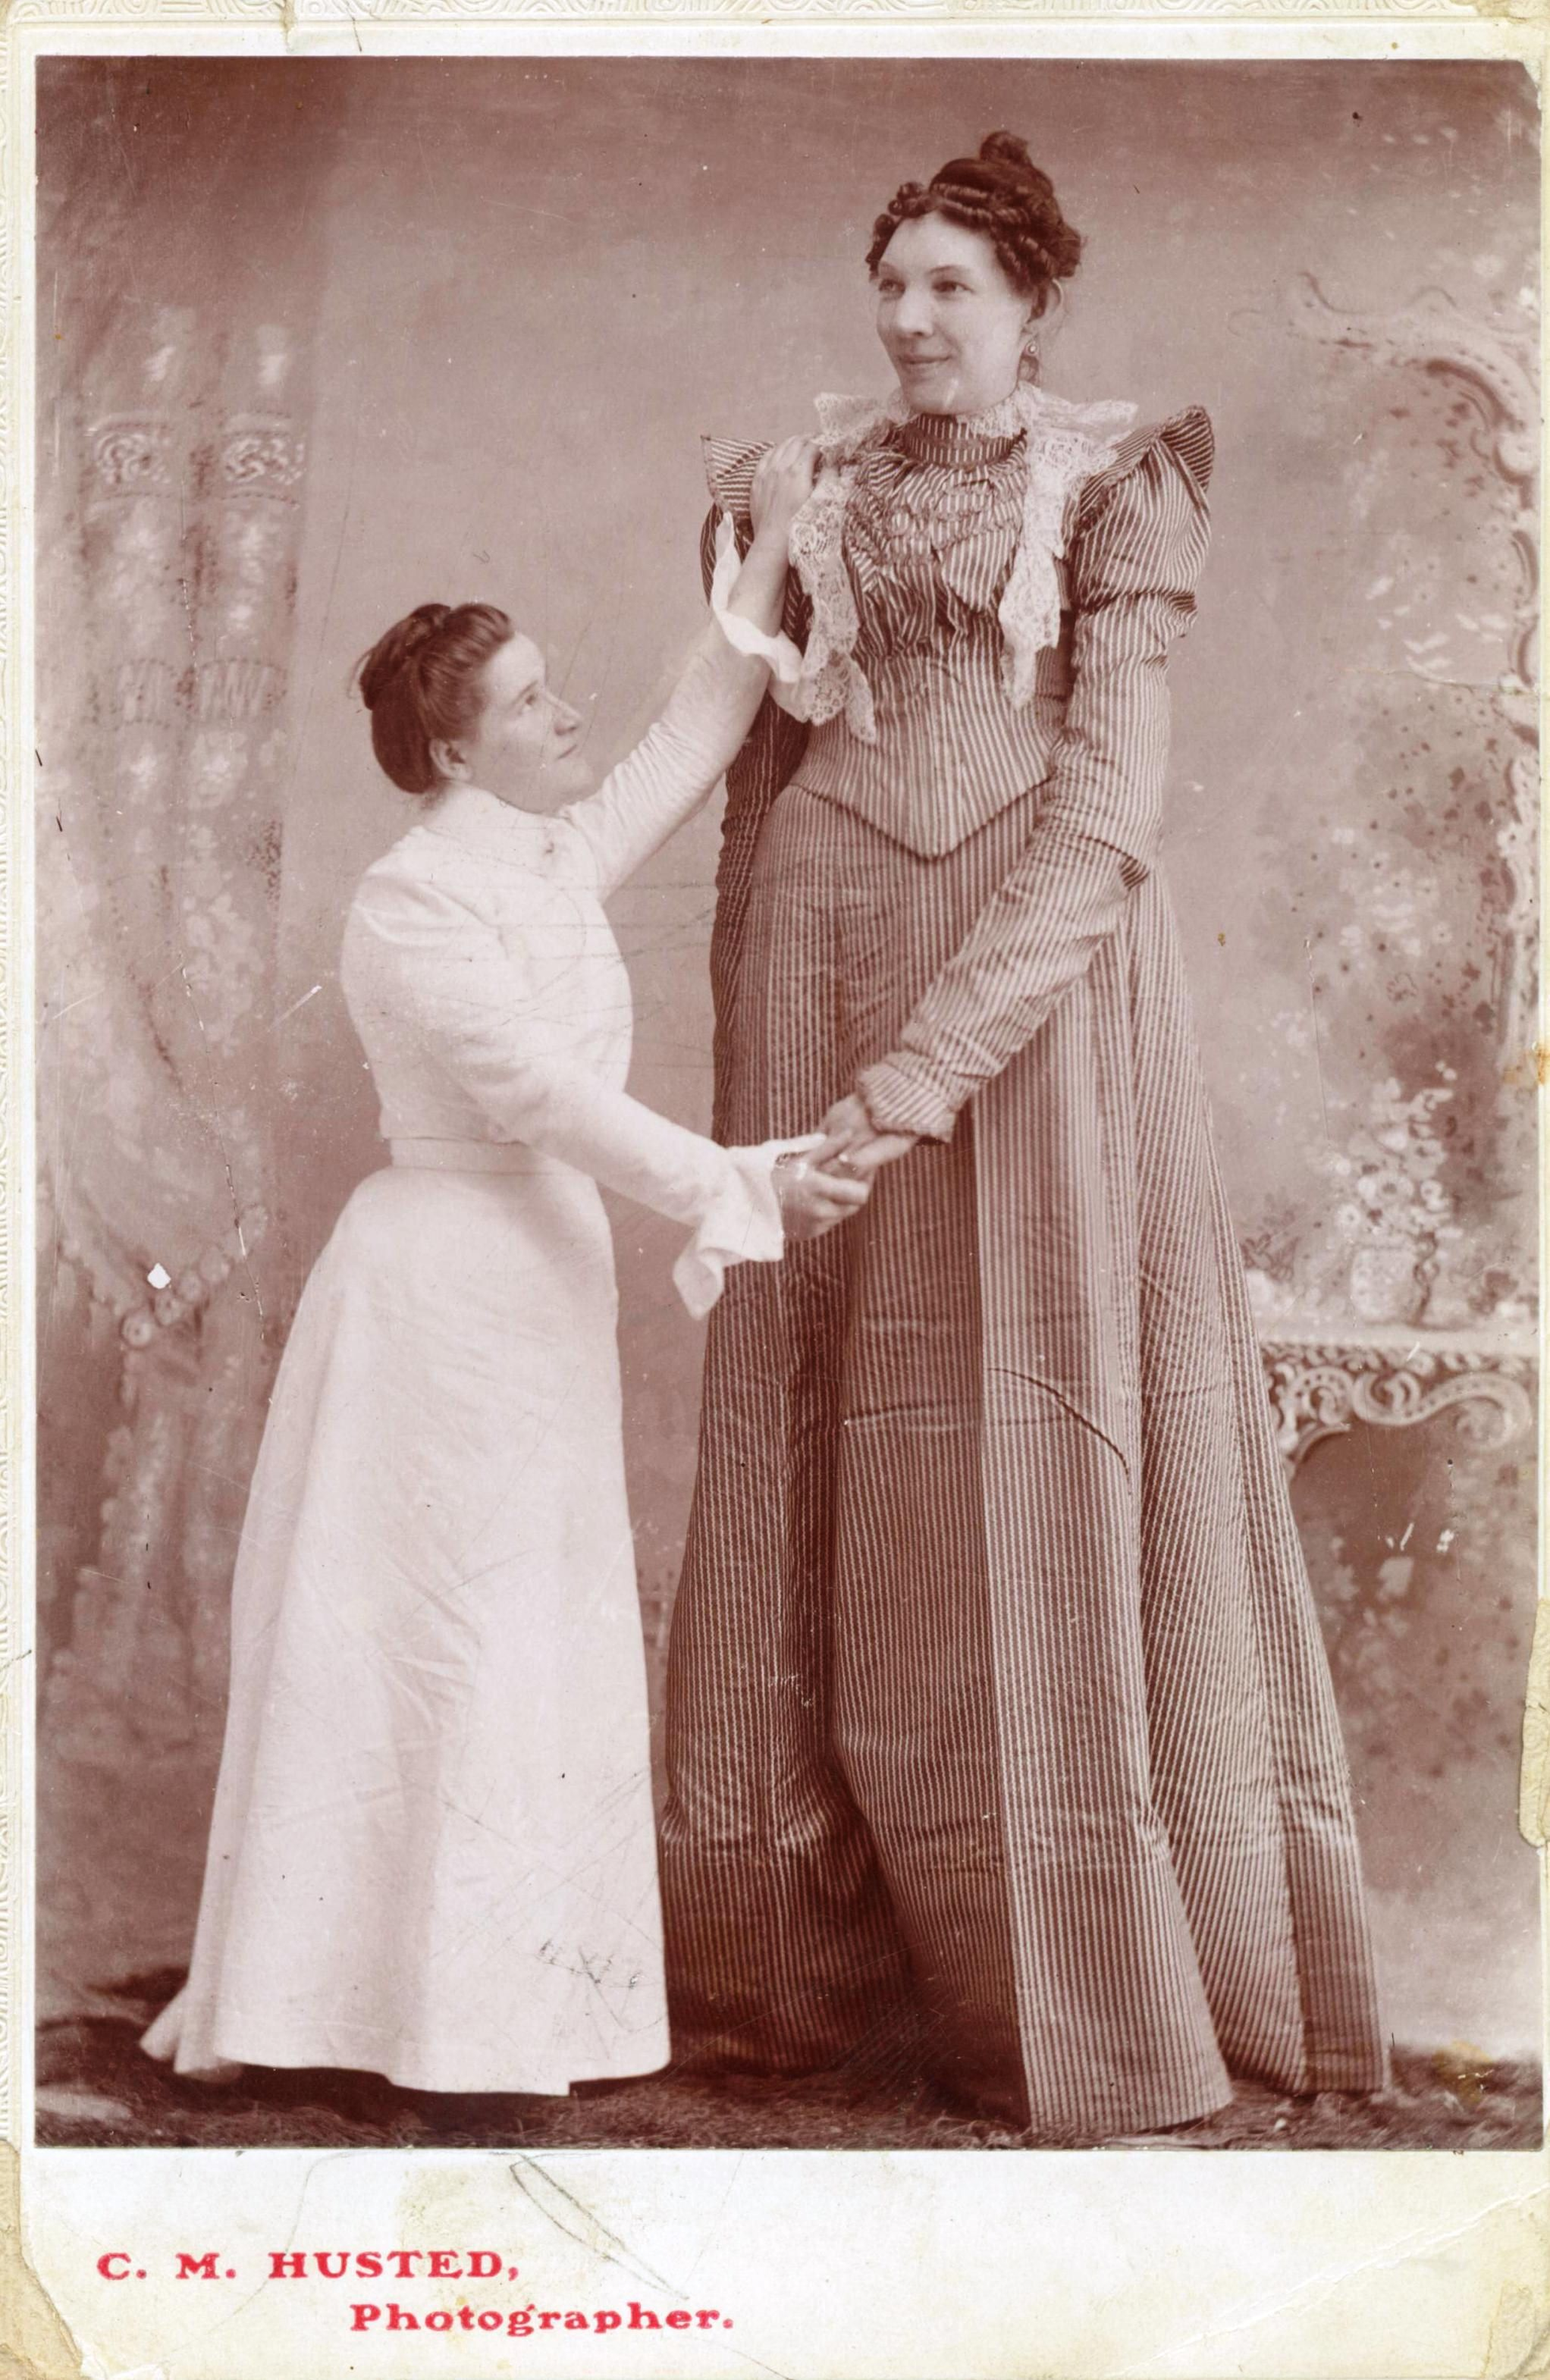 ELLA KATE EWING (18721913) According to her publicity